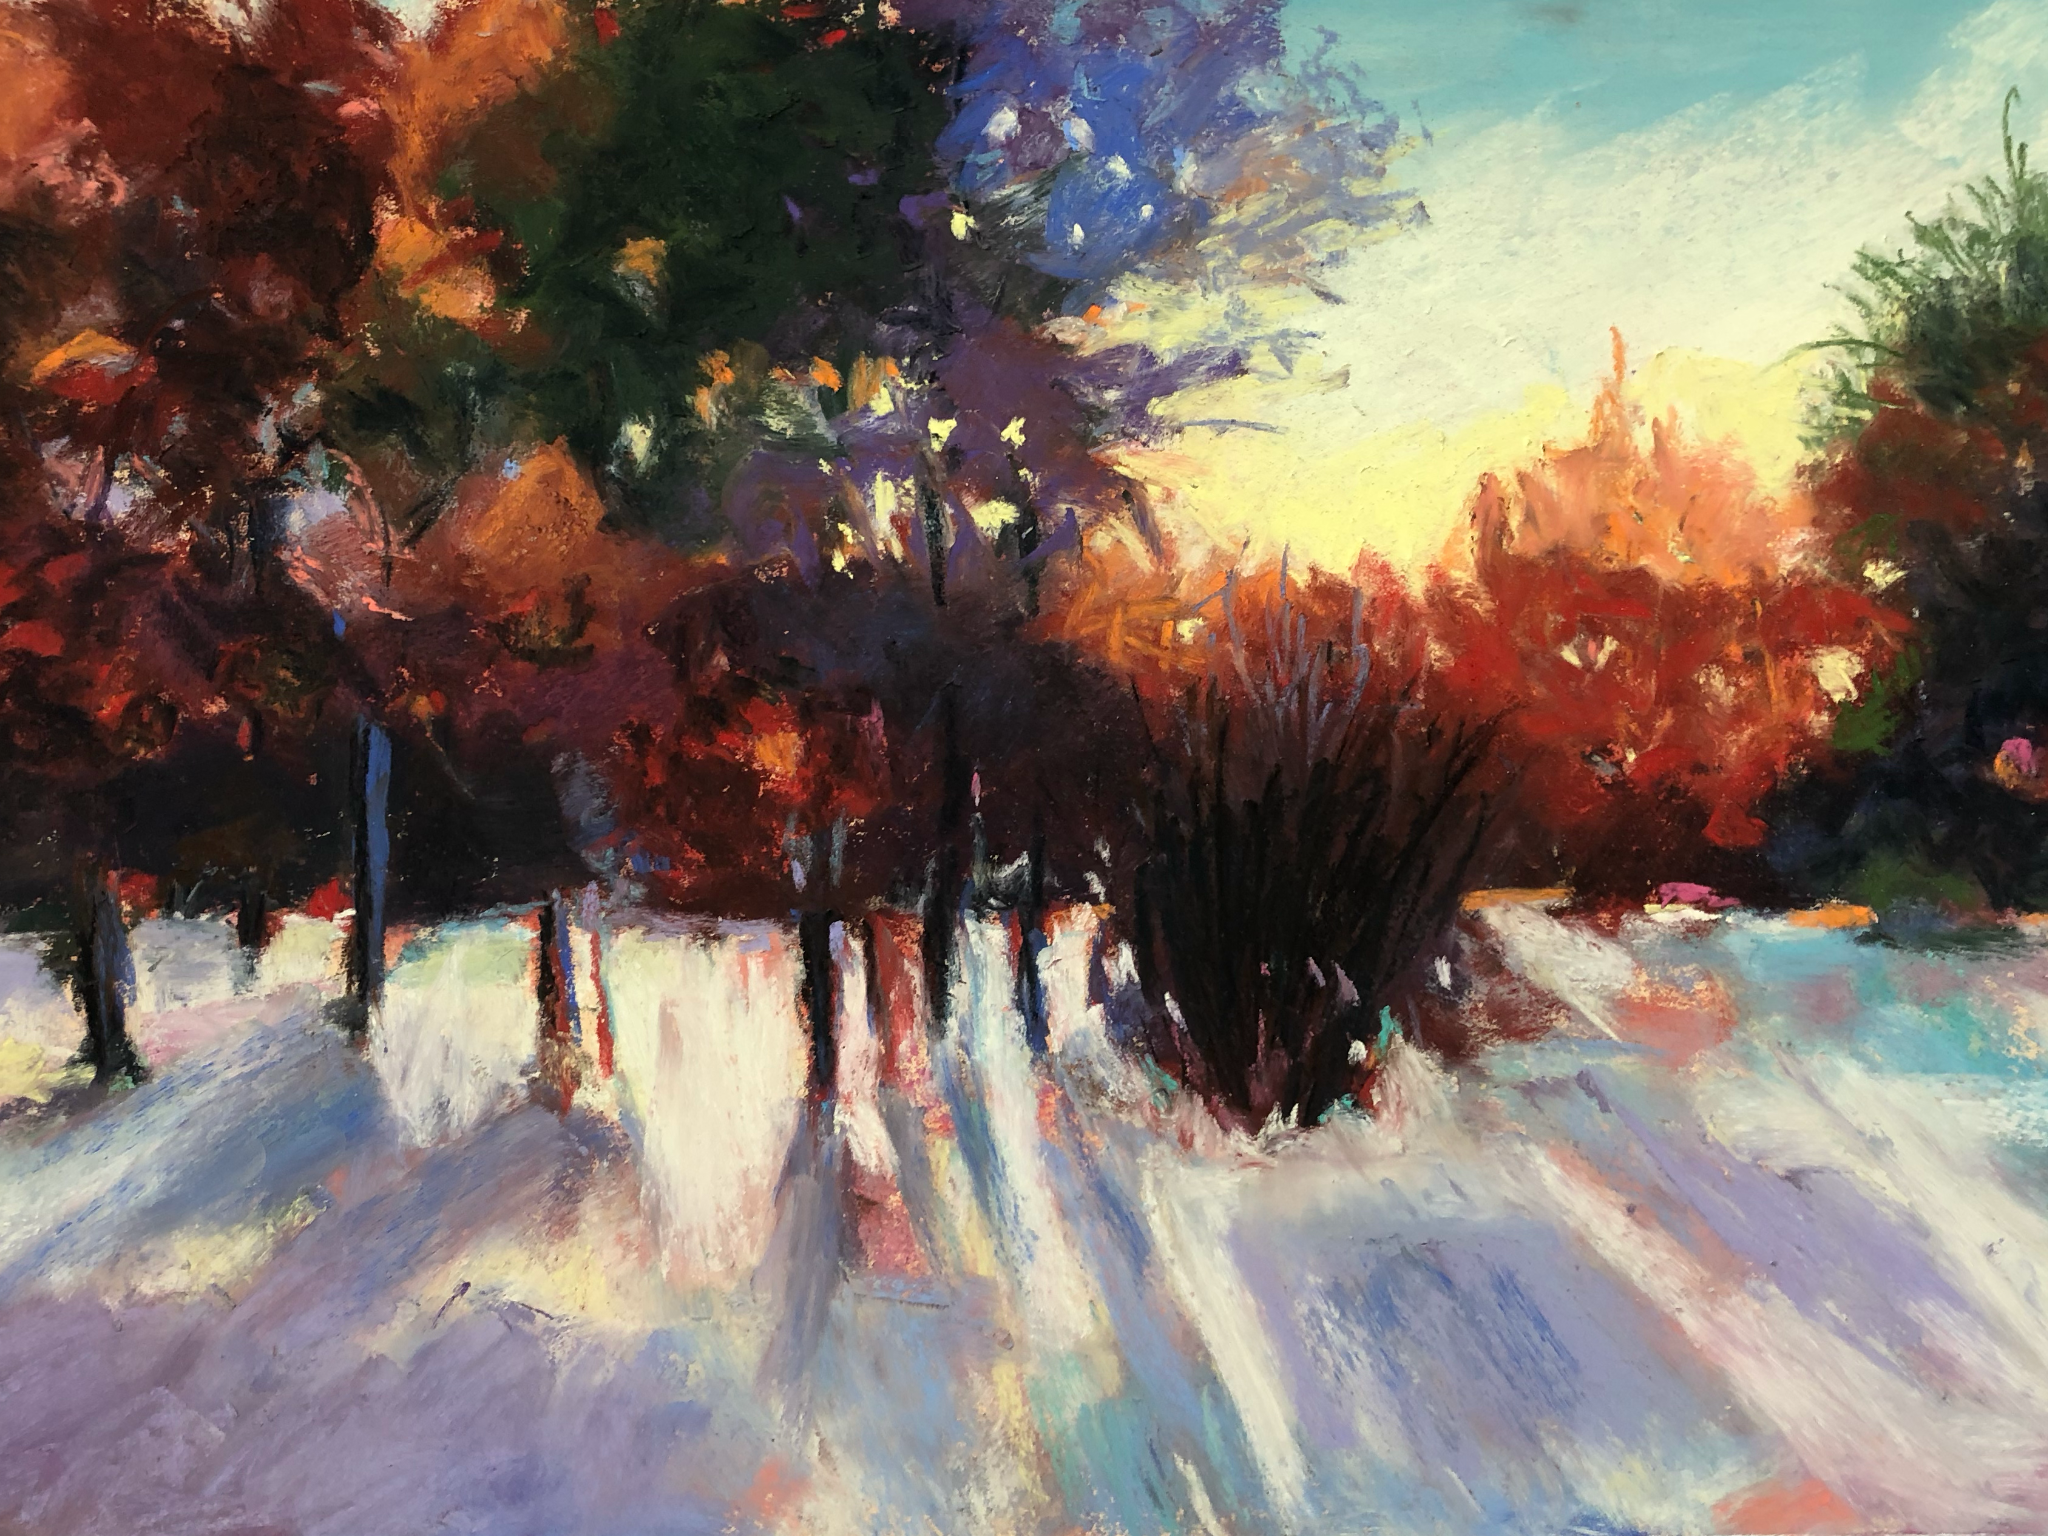 Winter Light on Snow - Medium/Materials used: Soft Pastels on Canson Mi-Teintes paper.Measurements (framed): 36cm x 48cmMeasurements (Unframed): 30cm x 42cm